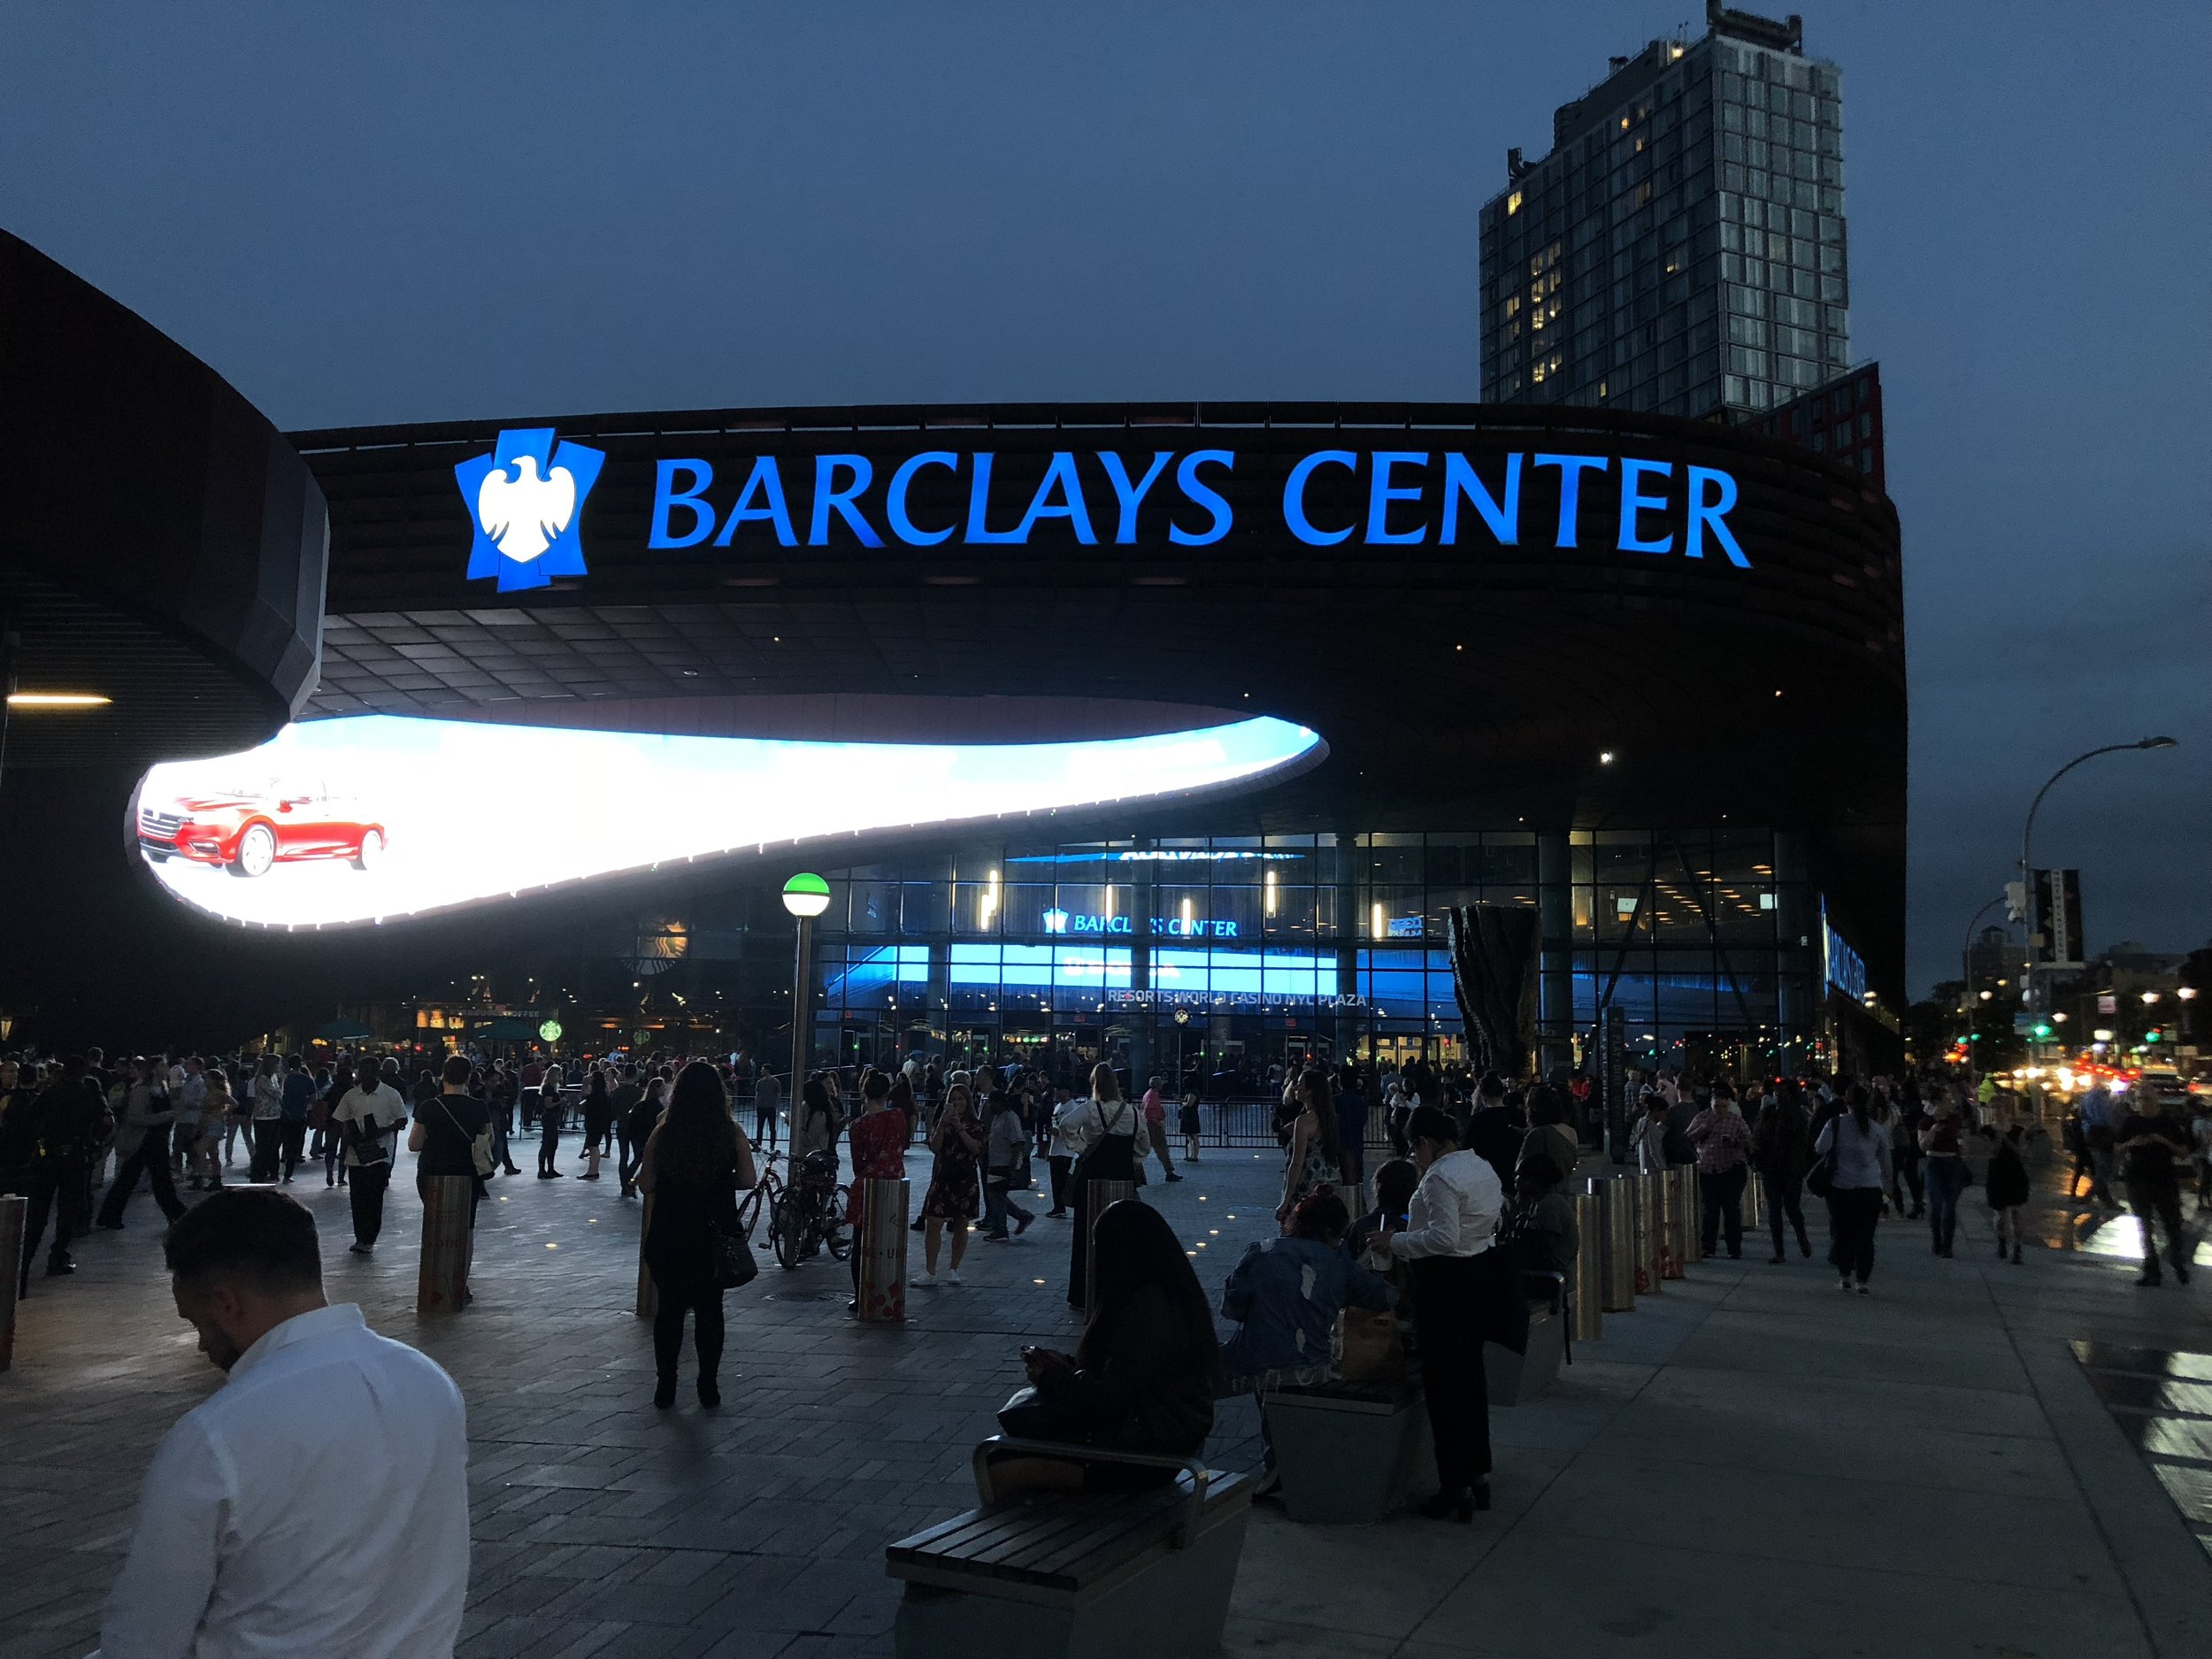 Photo taken by Samantha McHenry. Barclays Center, October 2018.